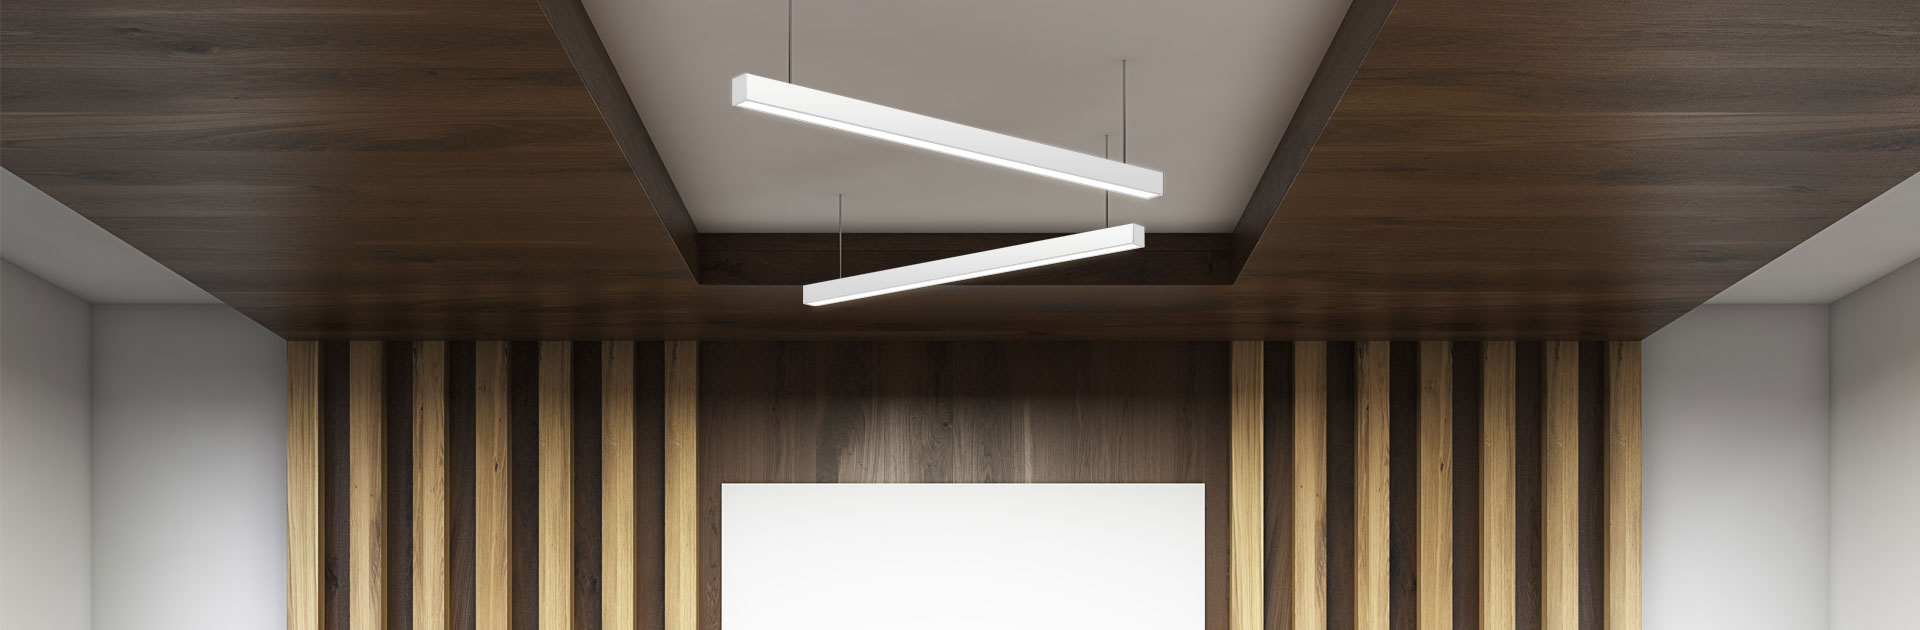 Led linear architectural